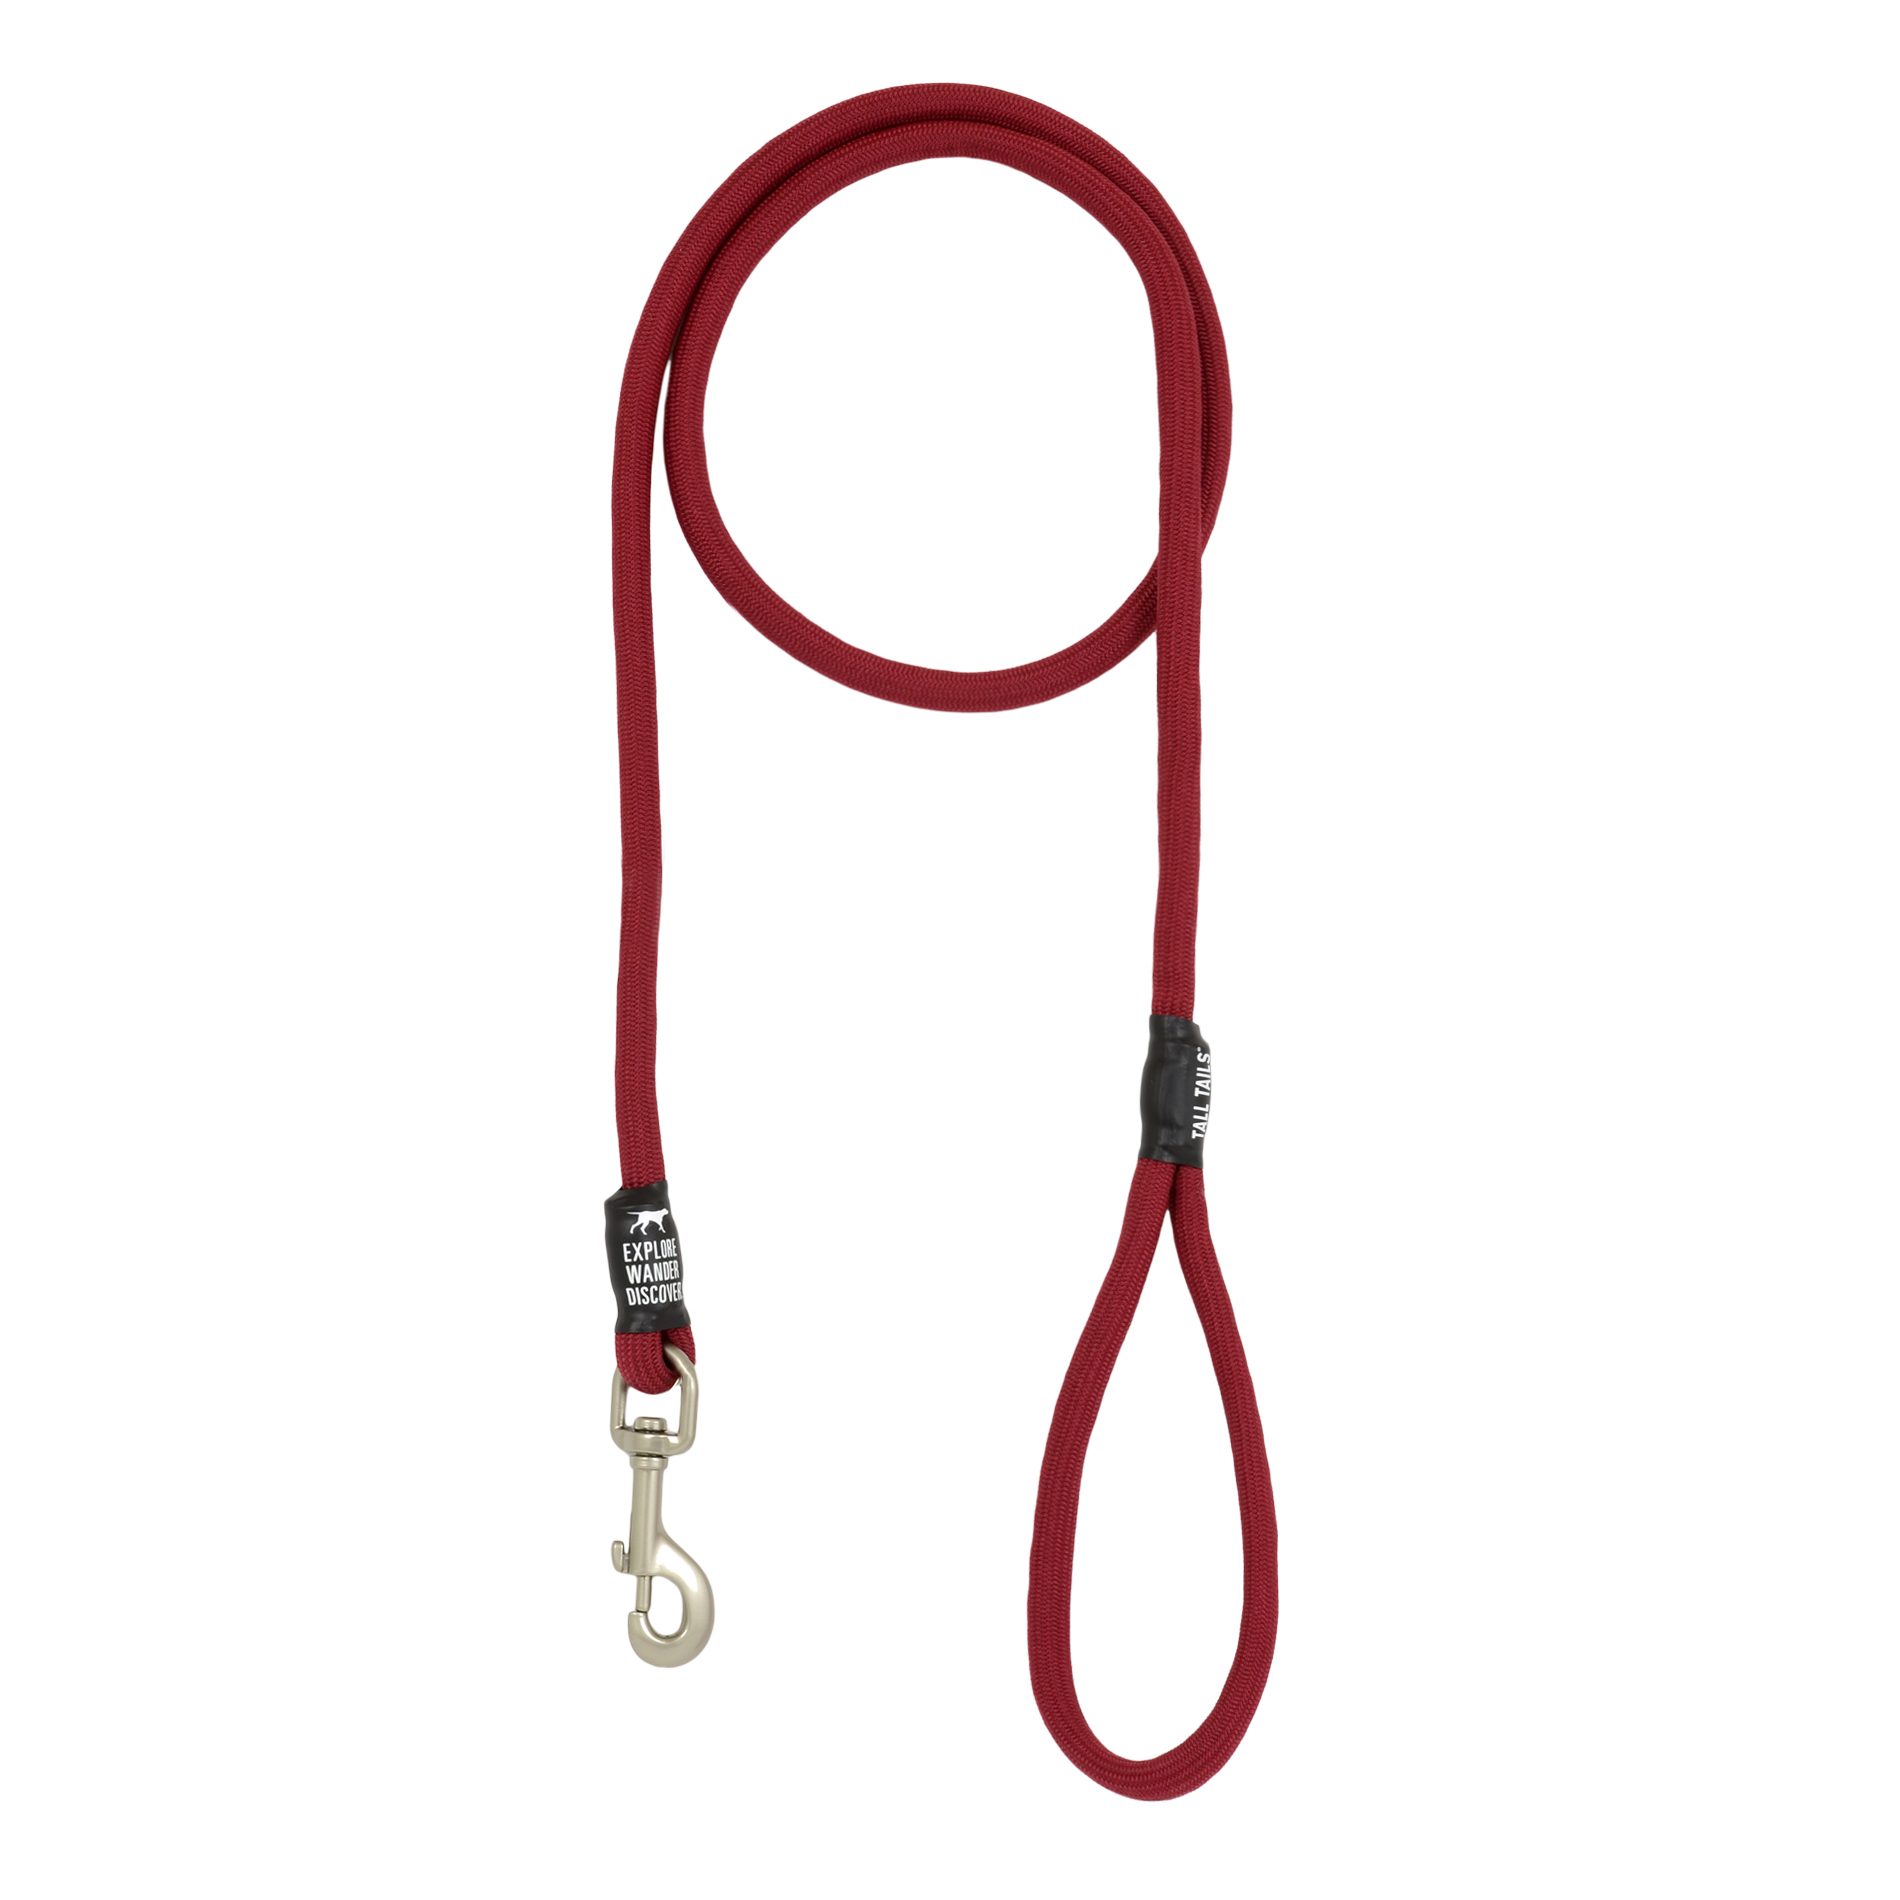 Tall Tails Dog Rope Leash, Red, Over 50-lb